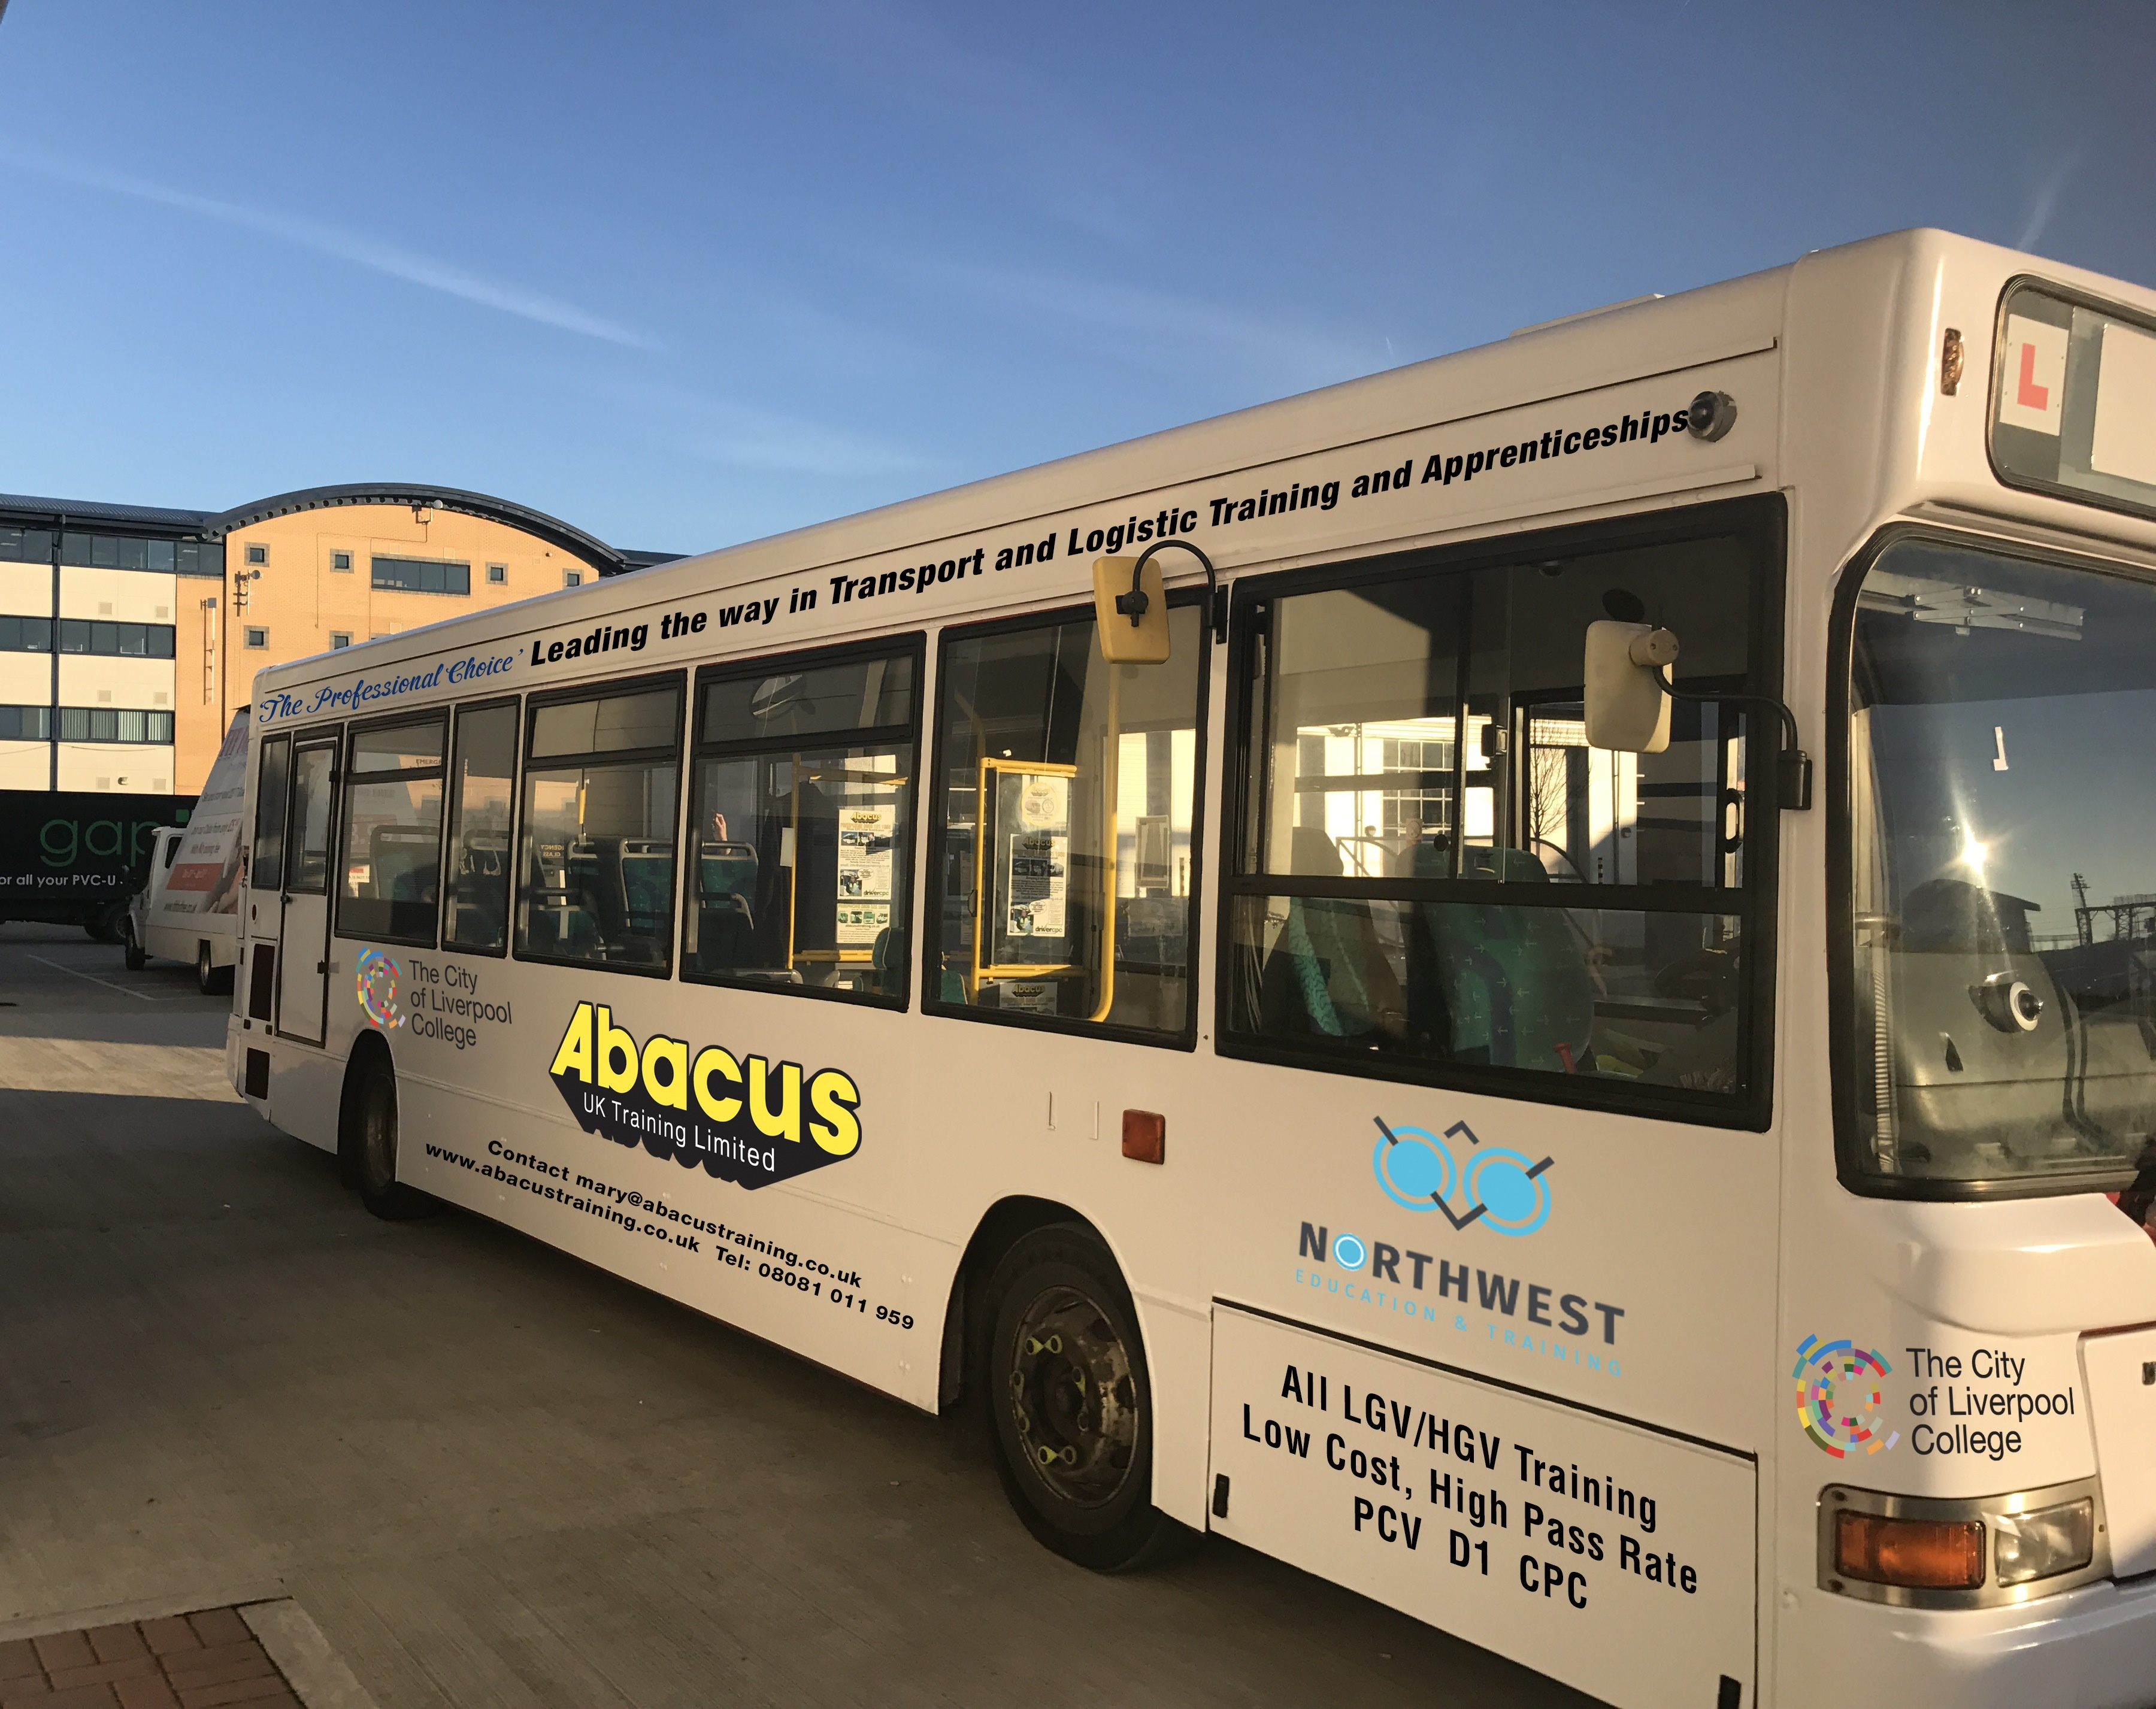 Bus Wrapping Liverpool - Advertise Your Business With a Bus Wrap